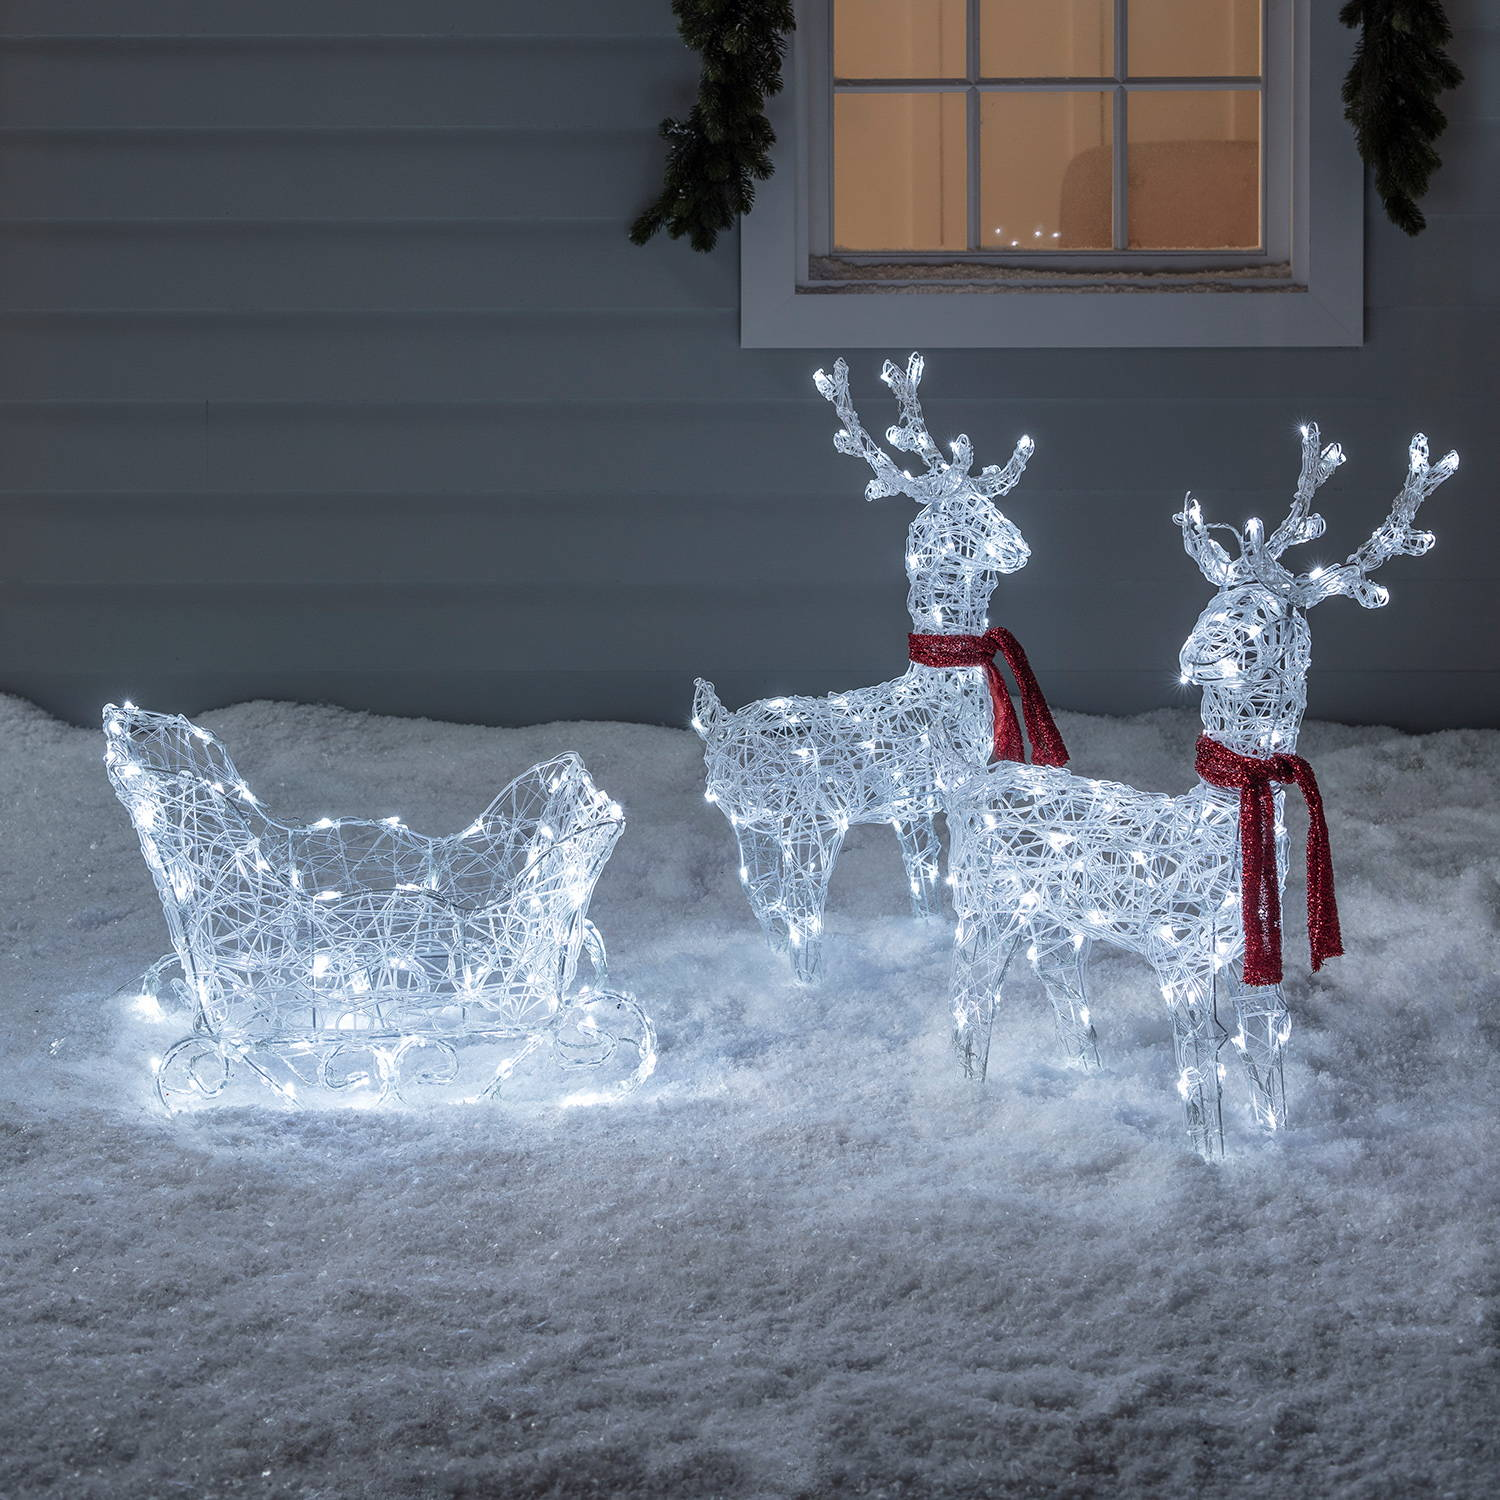 Light up reindeer and sleigh Christmas duo illuminating an icy glow over snow